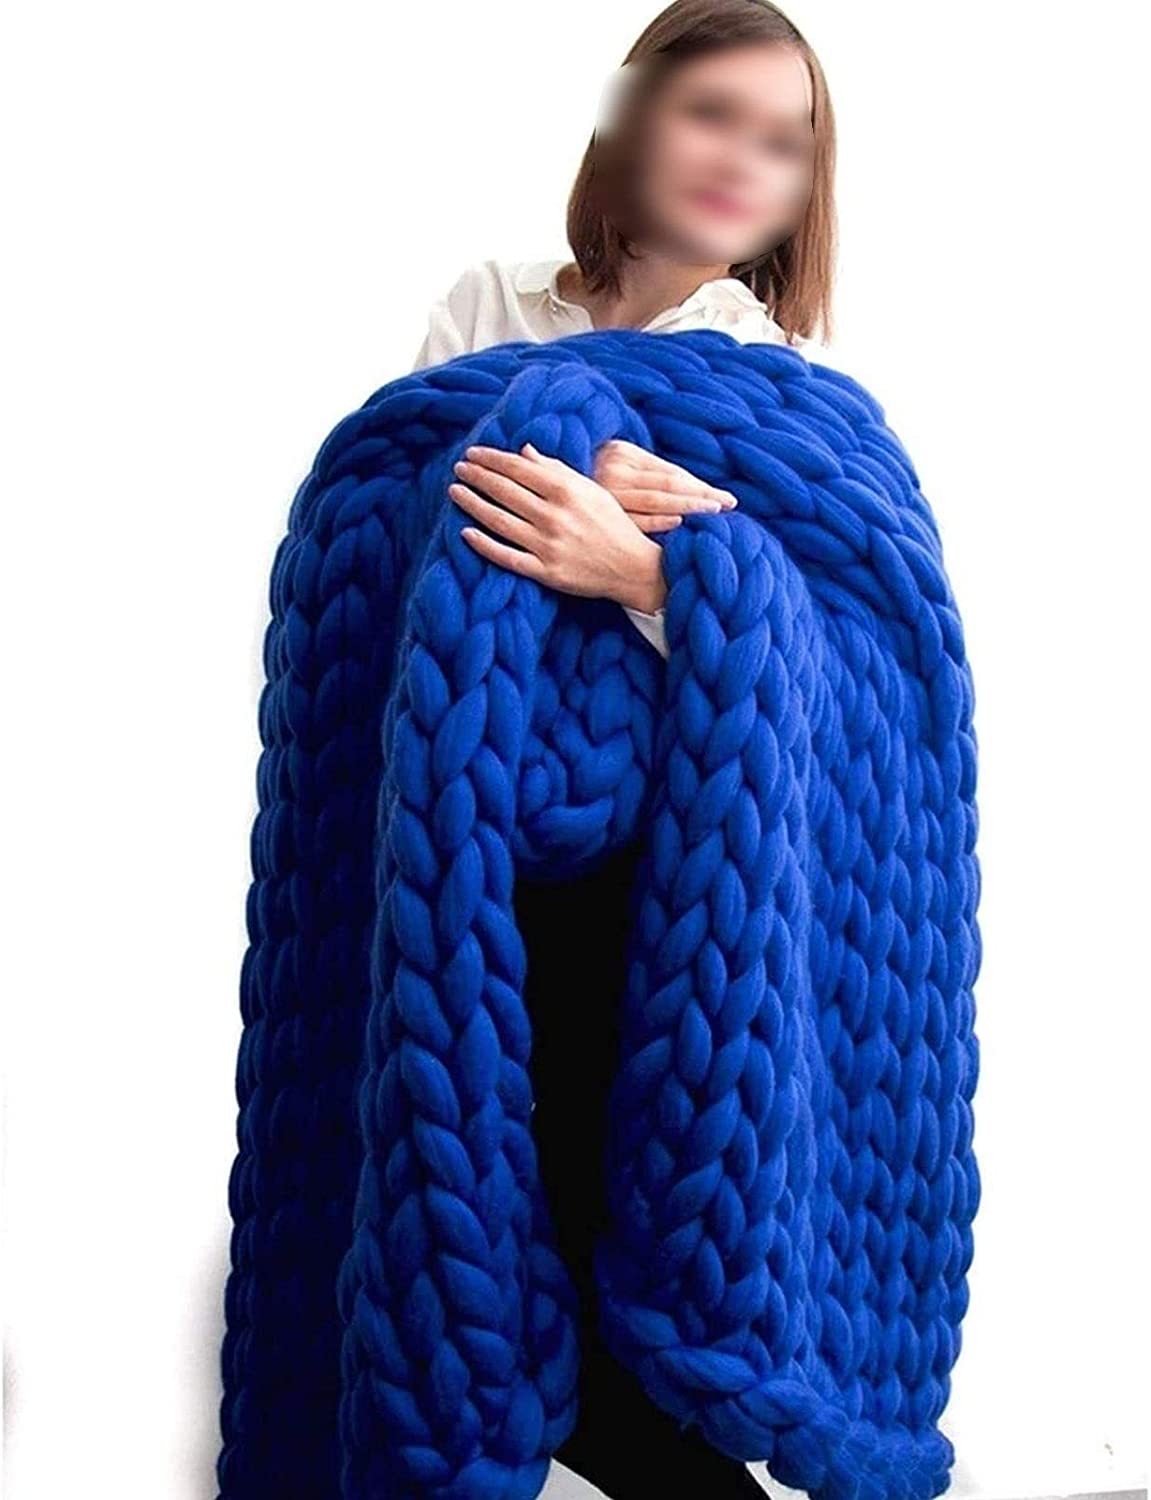 Super sale YXYH Chunky Knit Throw Directly managed store Blanket - Warm Large Knitt Handmade Cable